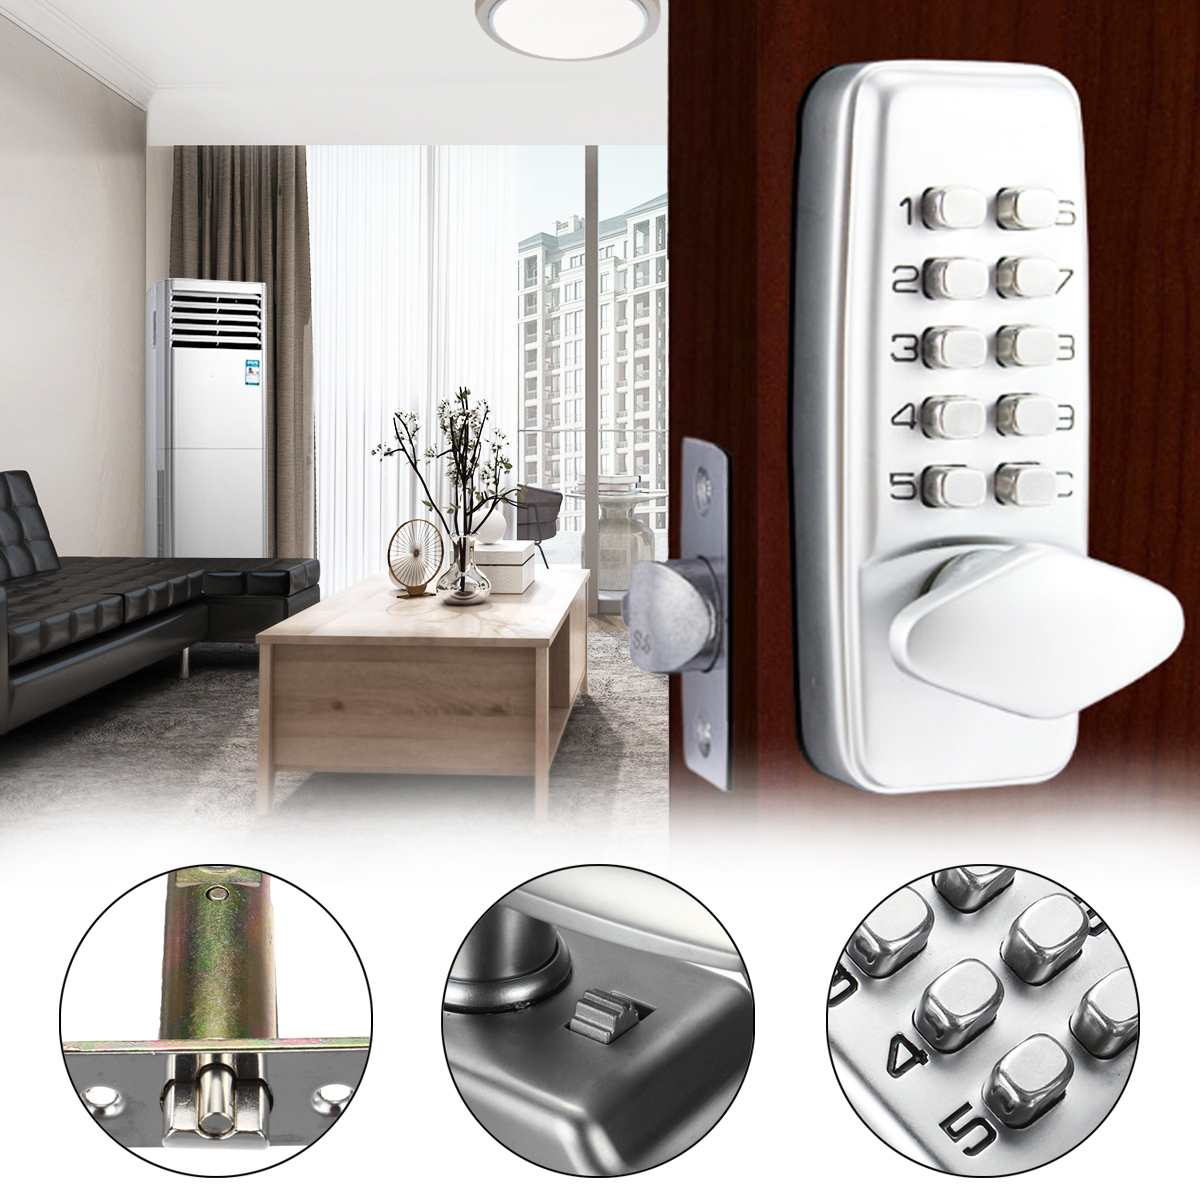 Waterproof Mechanical Door Lock Keyless Entry Exterior Combination Lock Digital Code Locks For Home Furniture Hardware